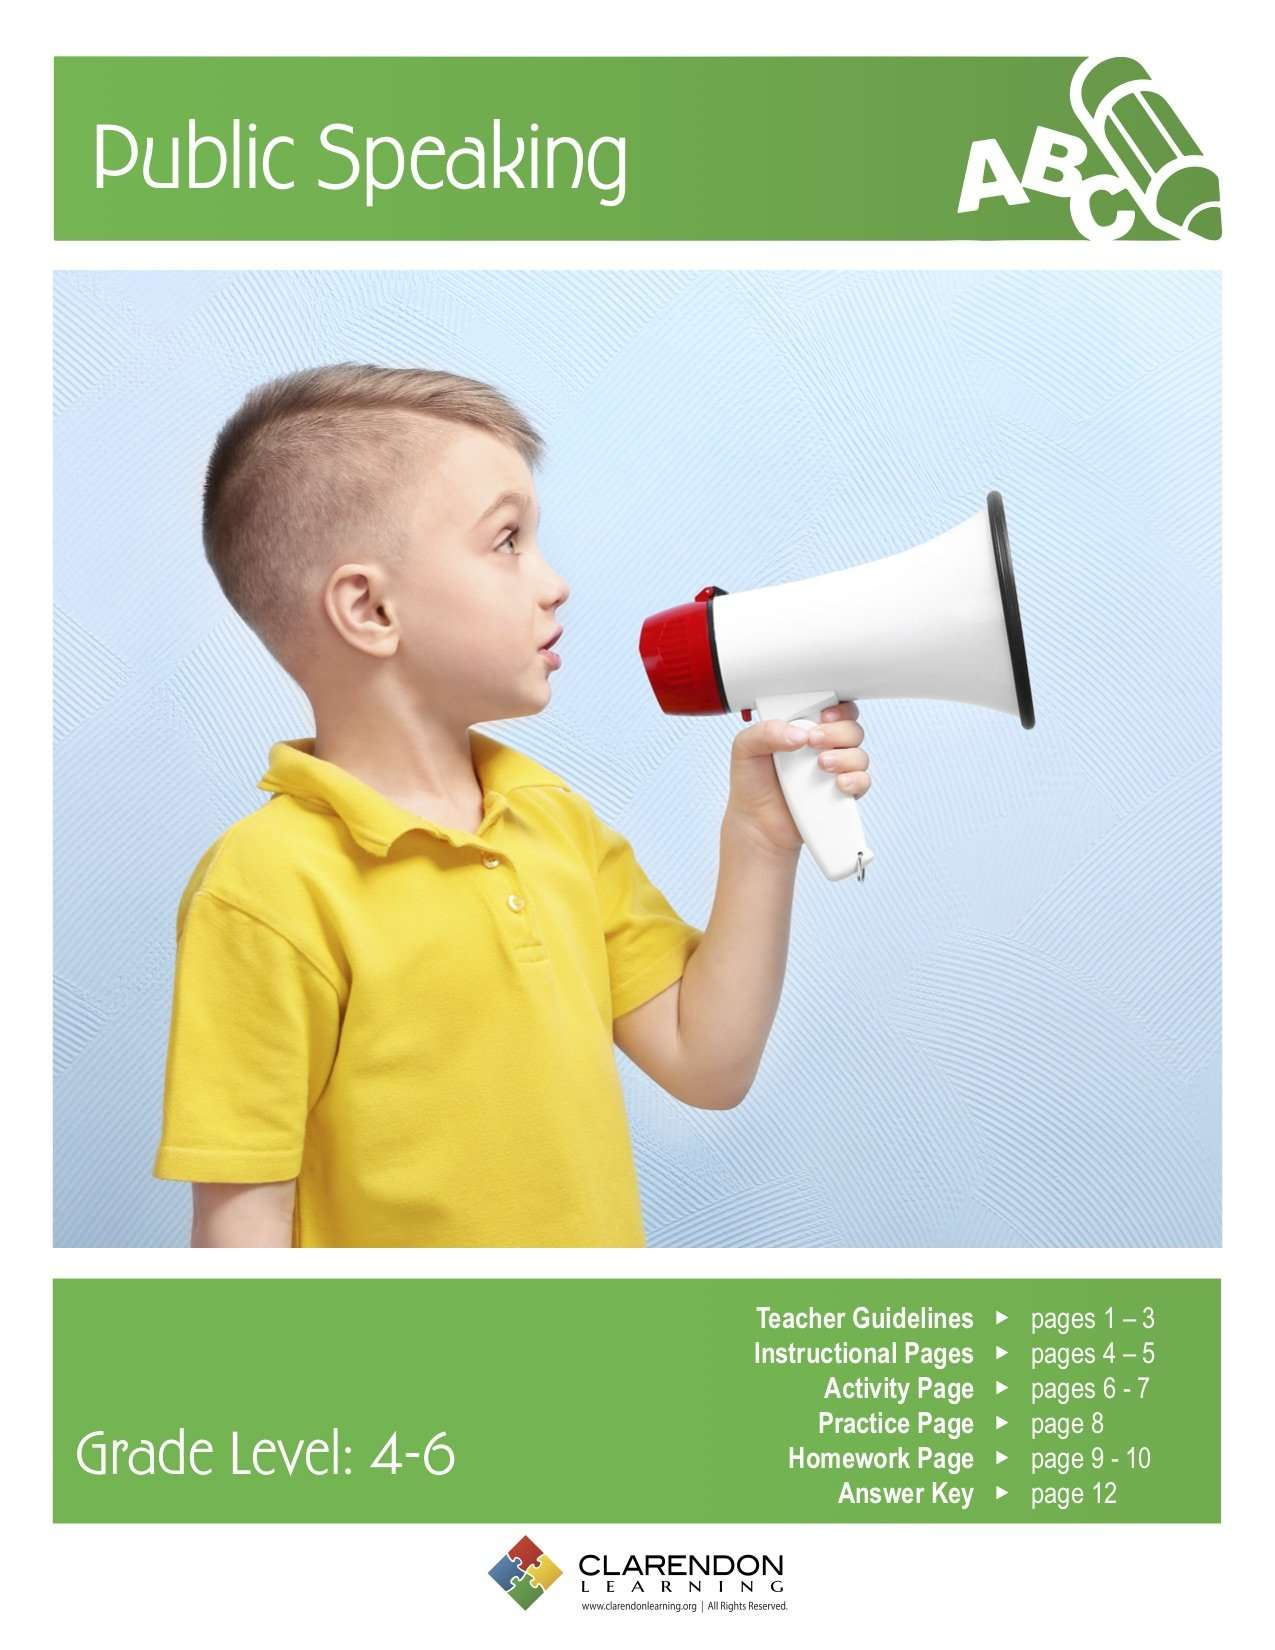 Public Speaking Lesson Plan | Clarendon Learning